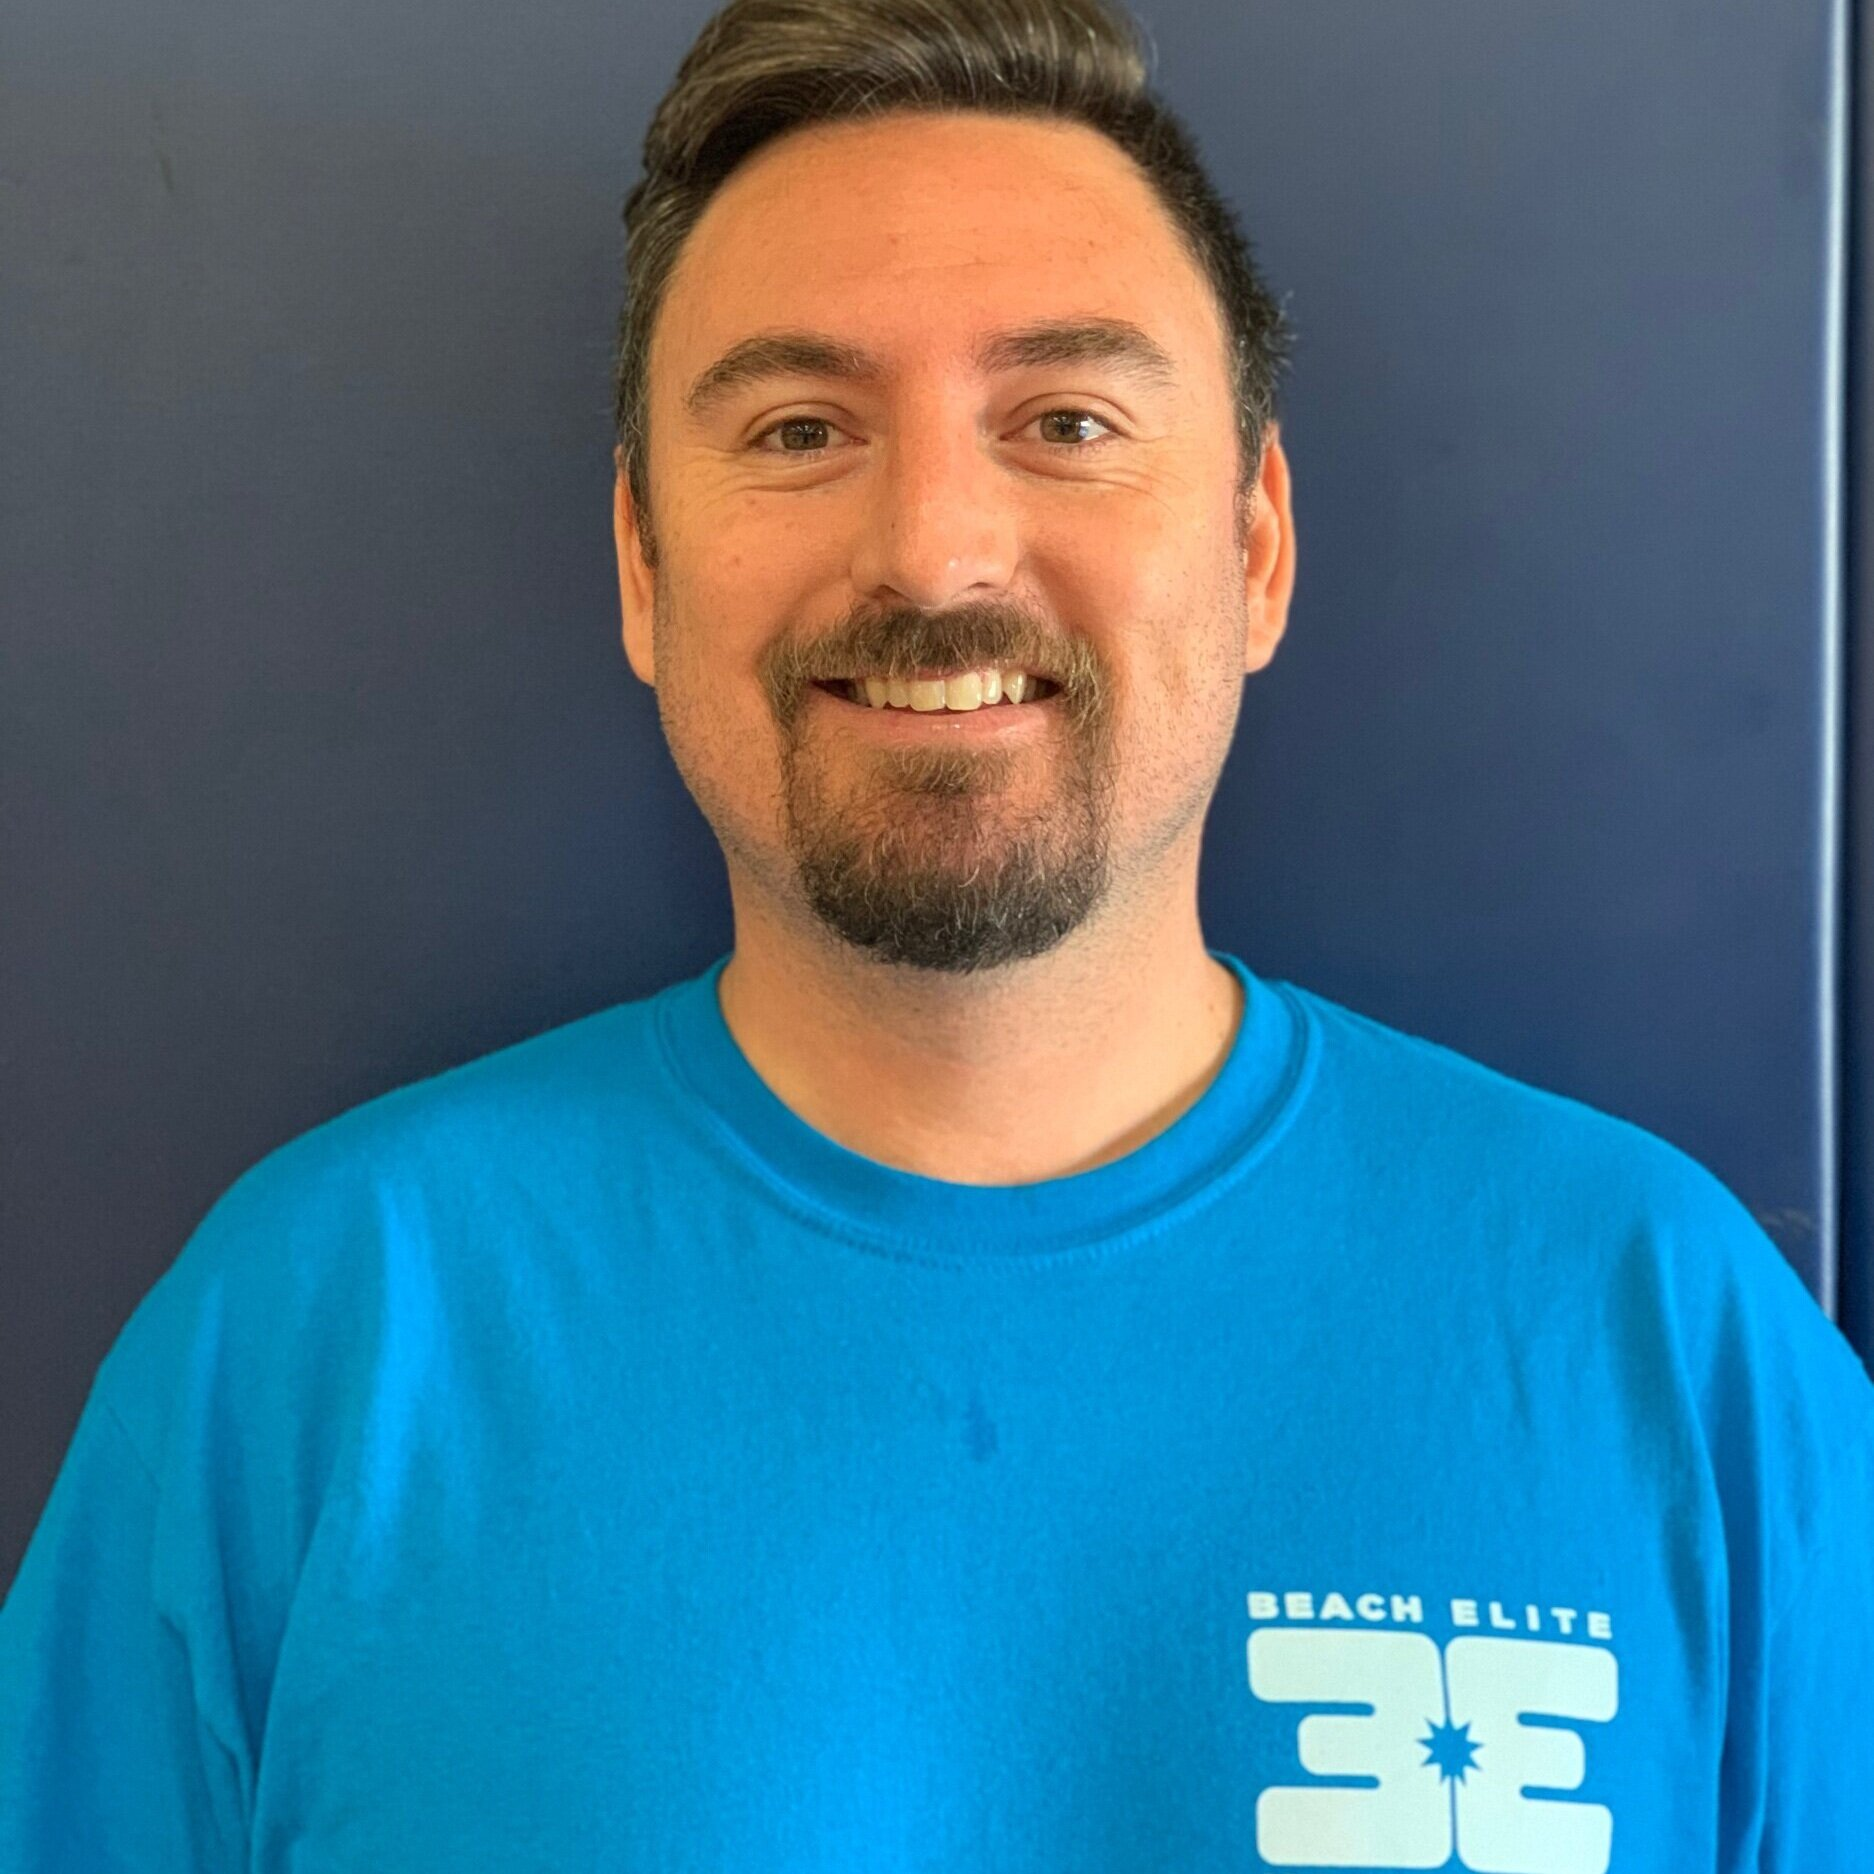 JASON MADDEN - Head Coach, Girls 13's Beach Elite Volleyball Club2019-2020: Instructor, Beach Elite indoor clinics2018-2019: Program Coordinator, United States Youth Volleyball League, 18 volleyball sites for the Advanced Juniors program for California